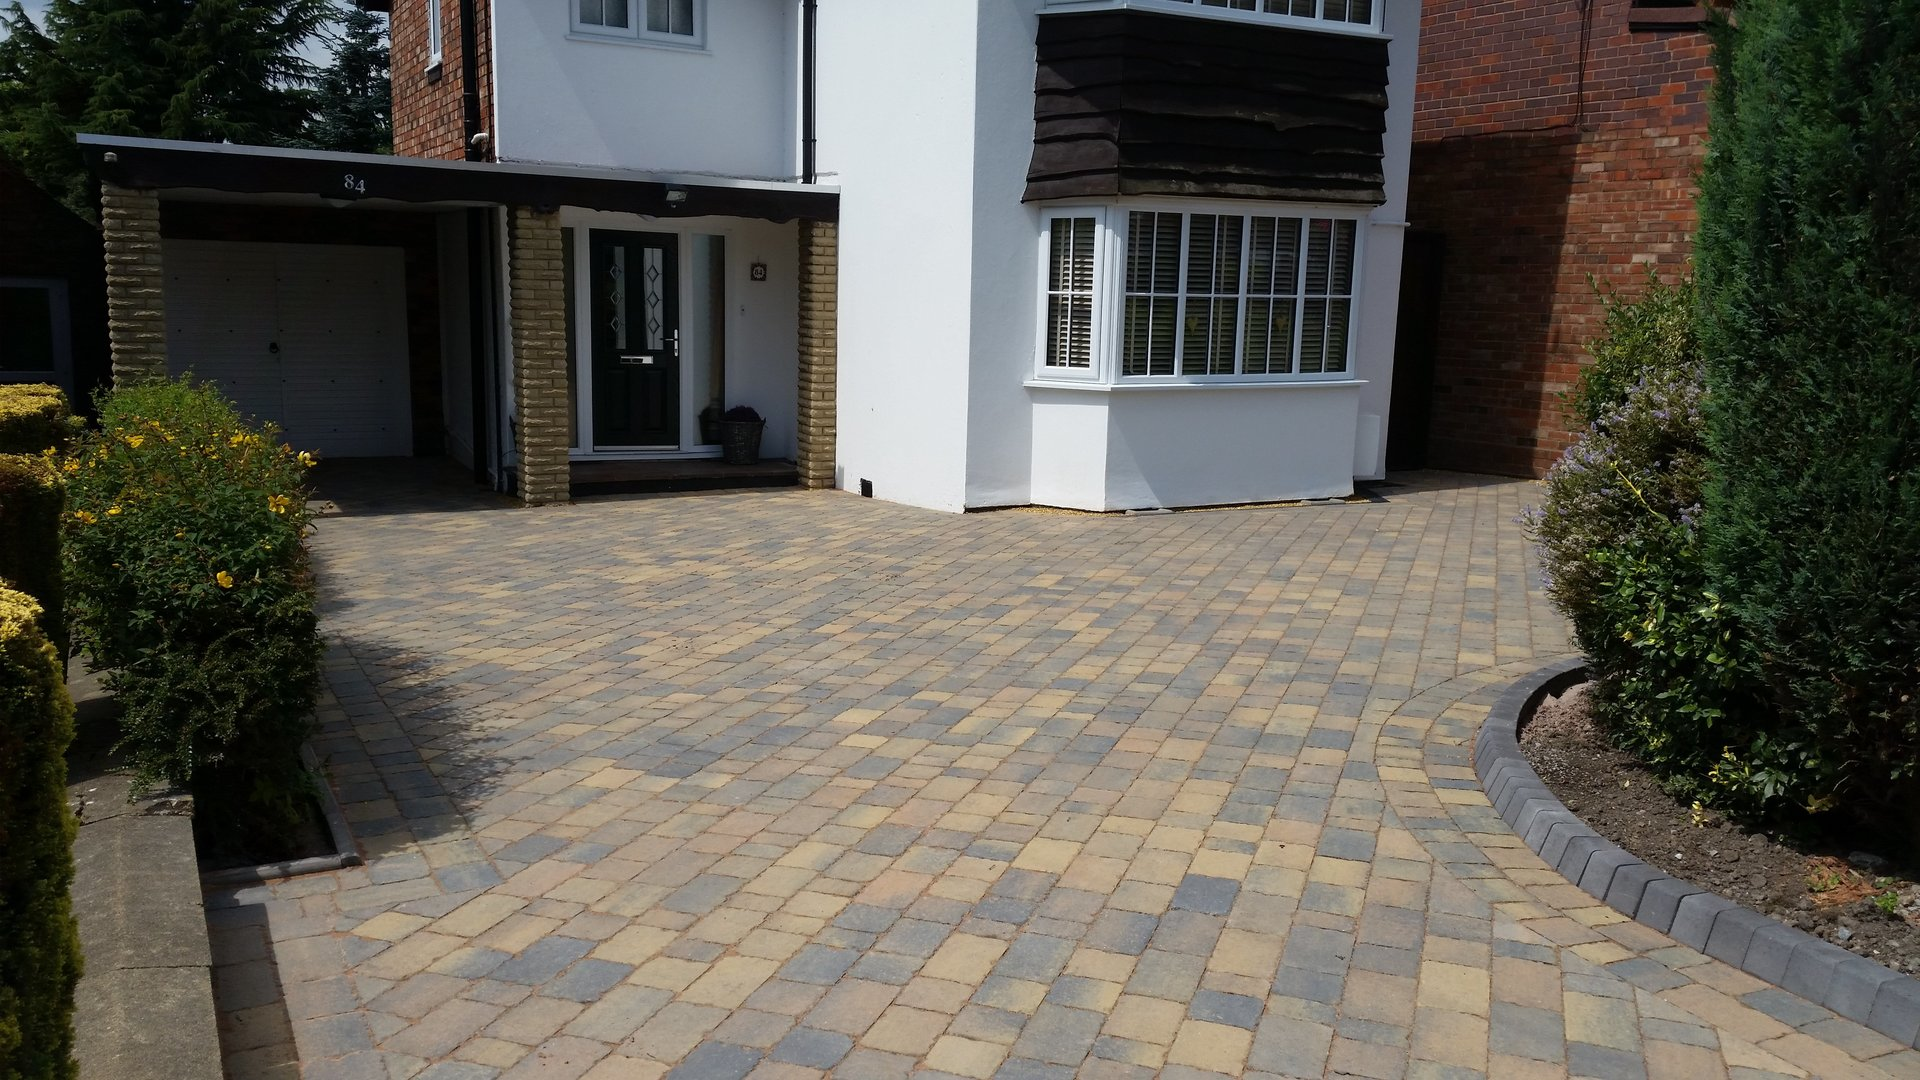 Lichfield Tarmacadam Domestic and Commercial Surfacing Experts